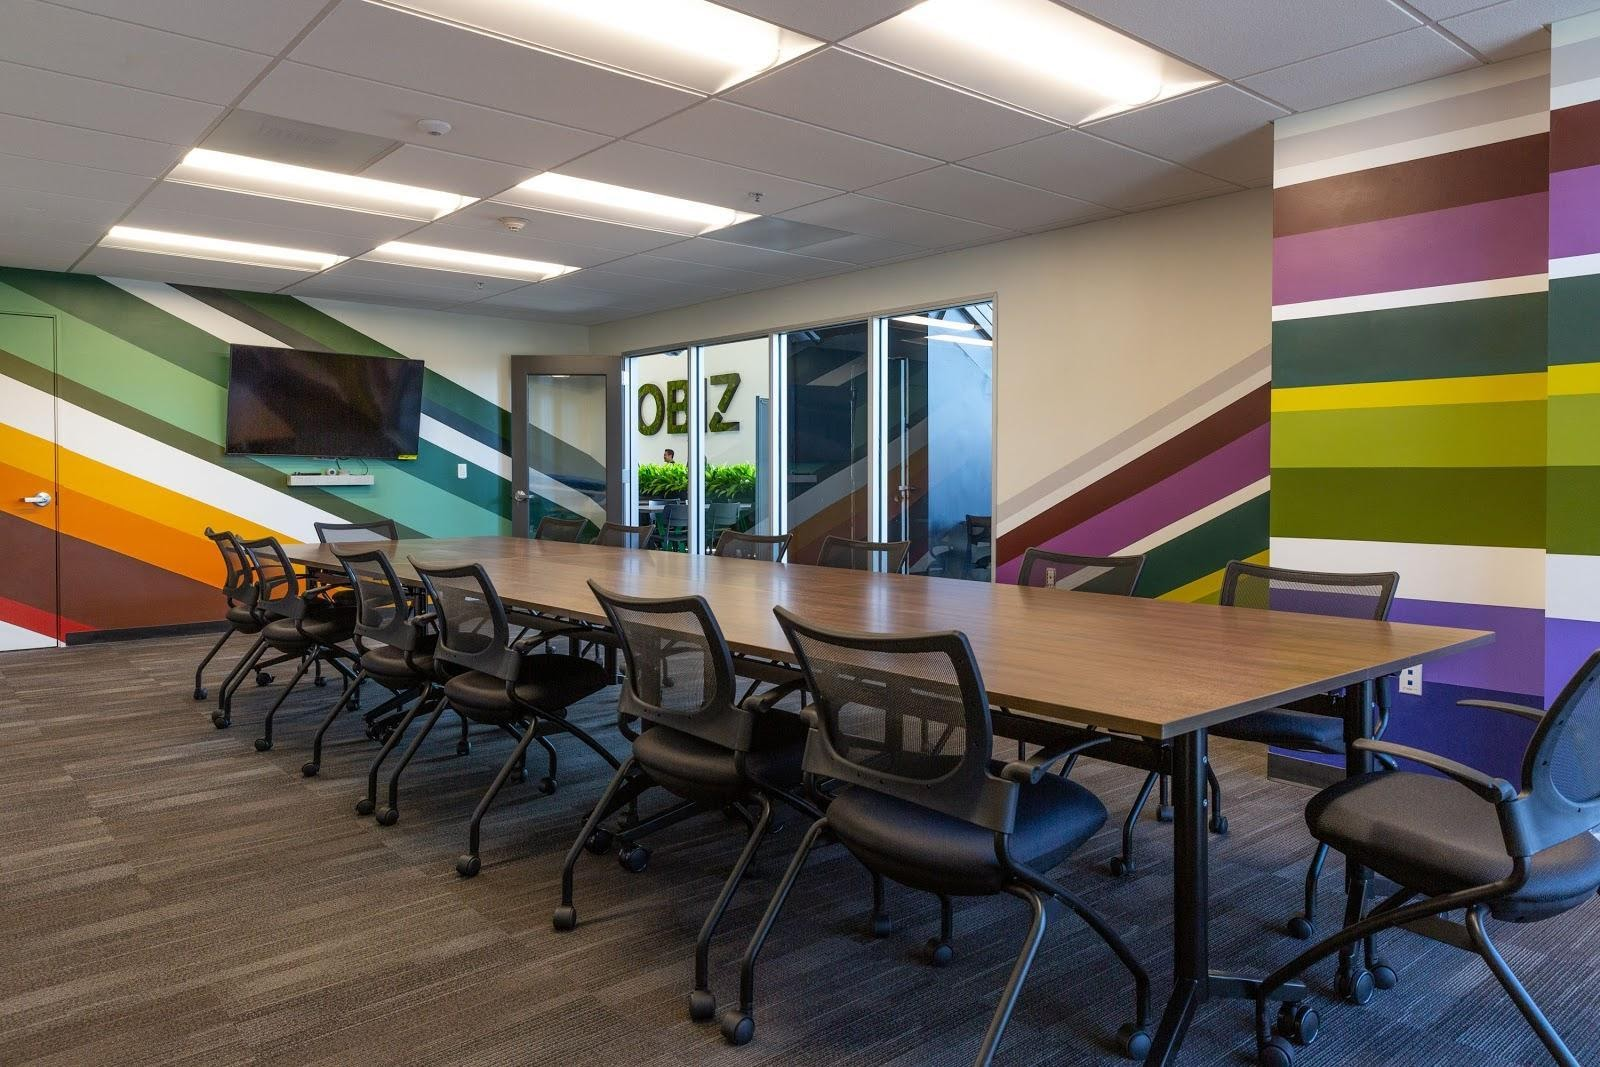 creative conference room design colorful painted mural orange green purple